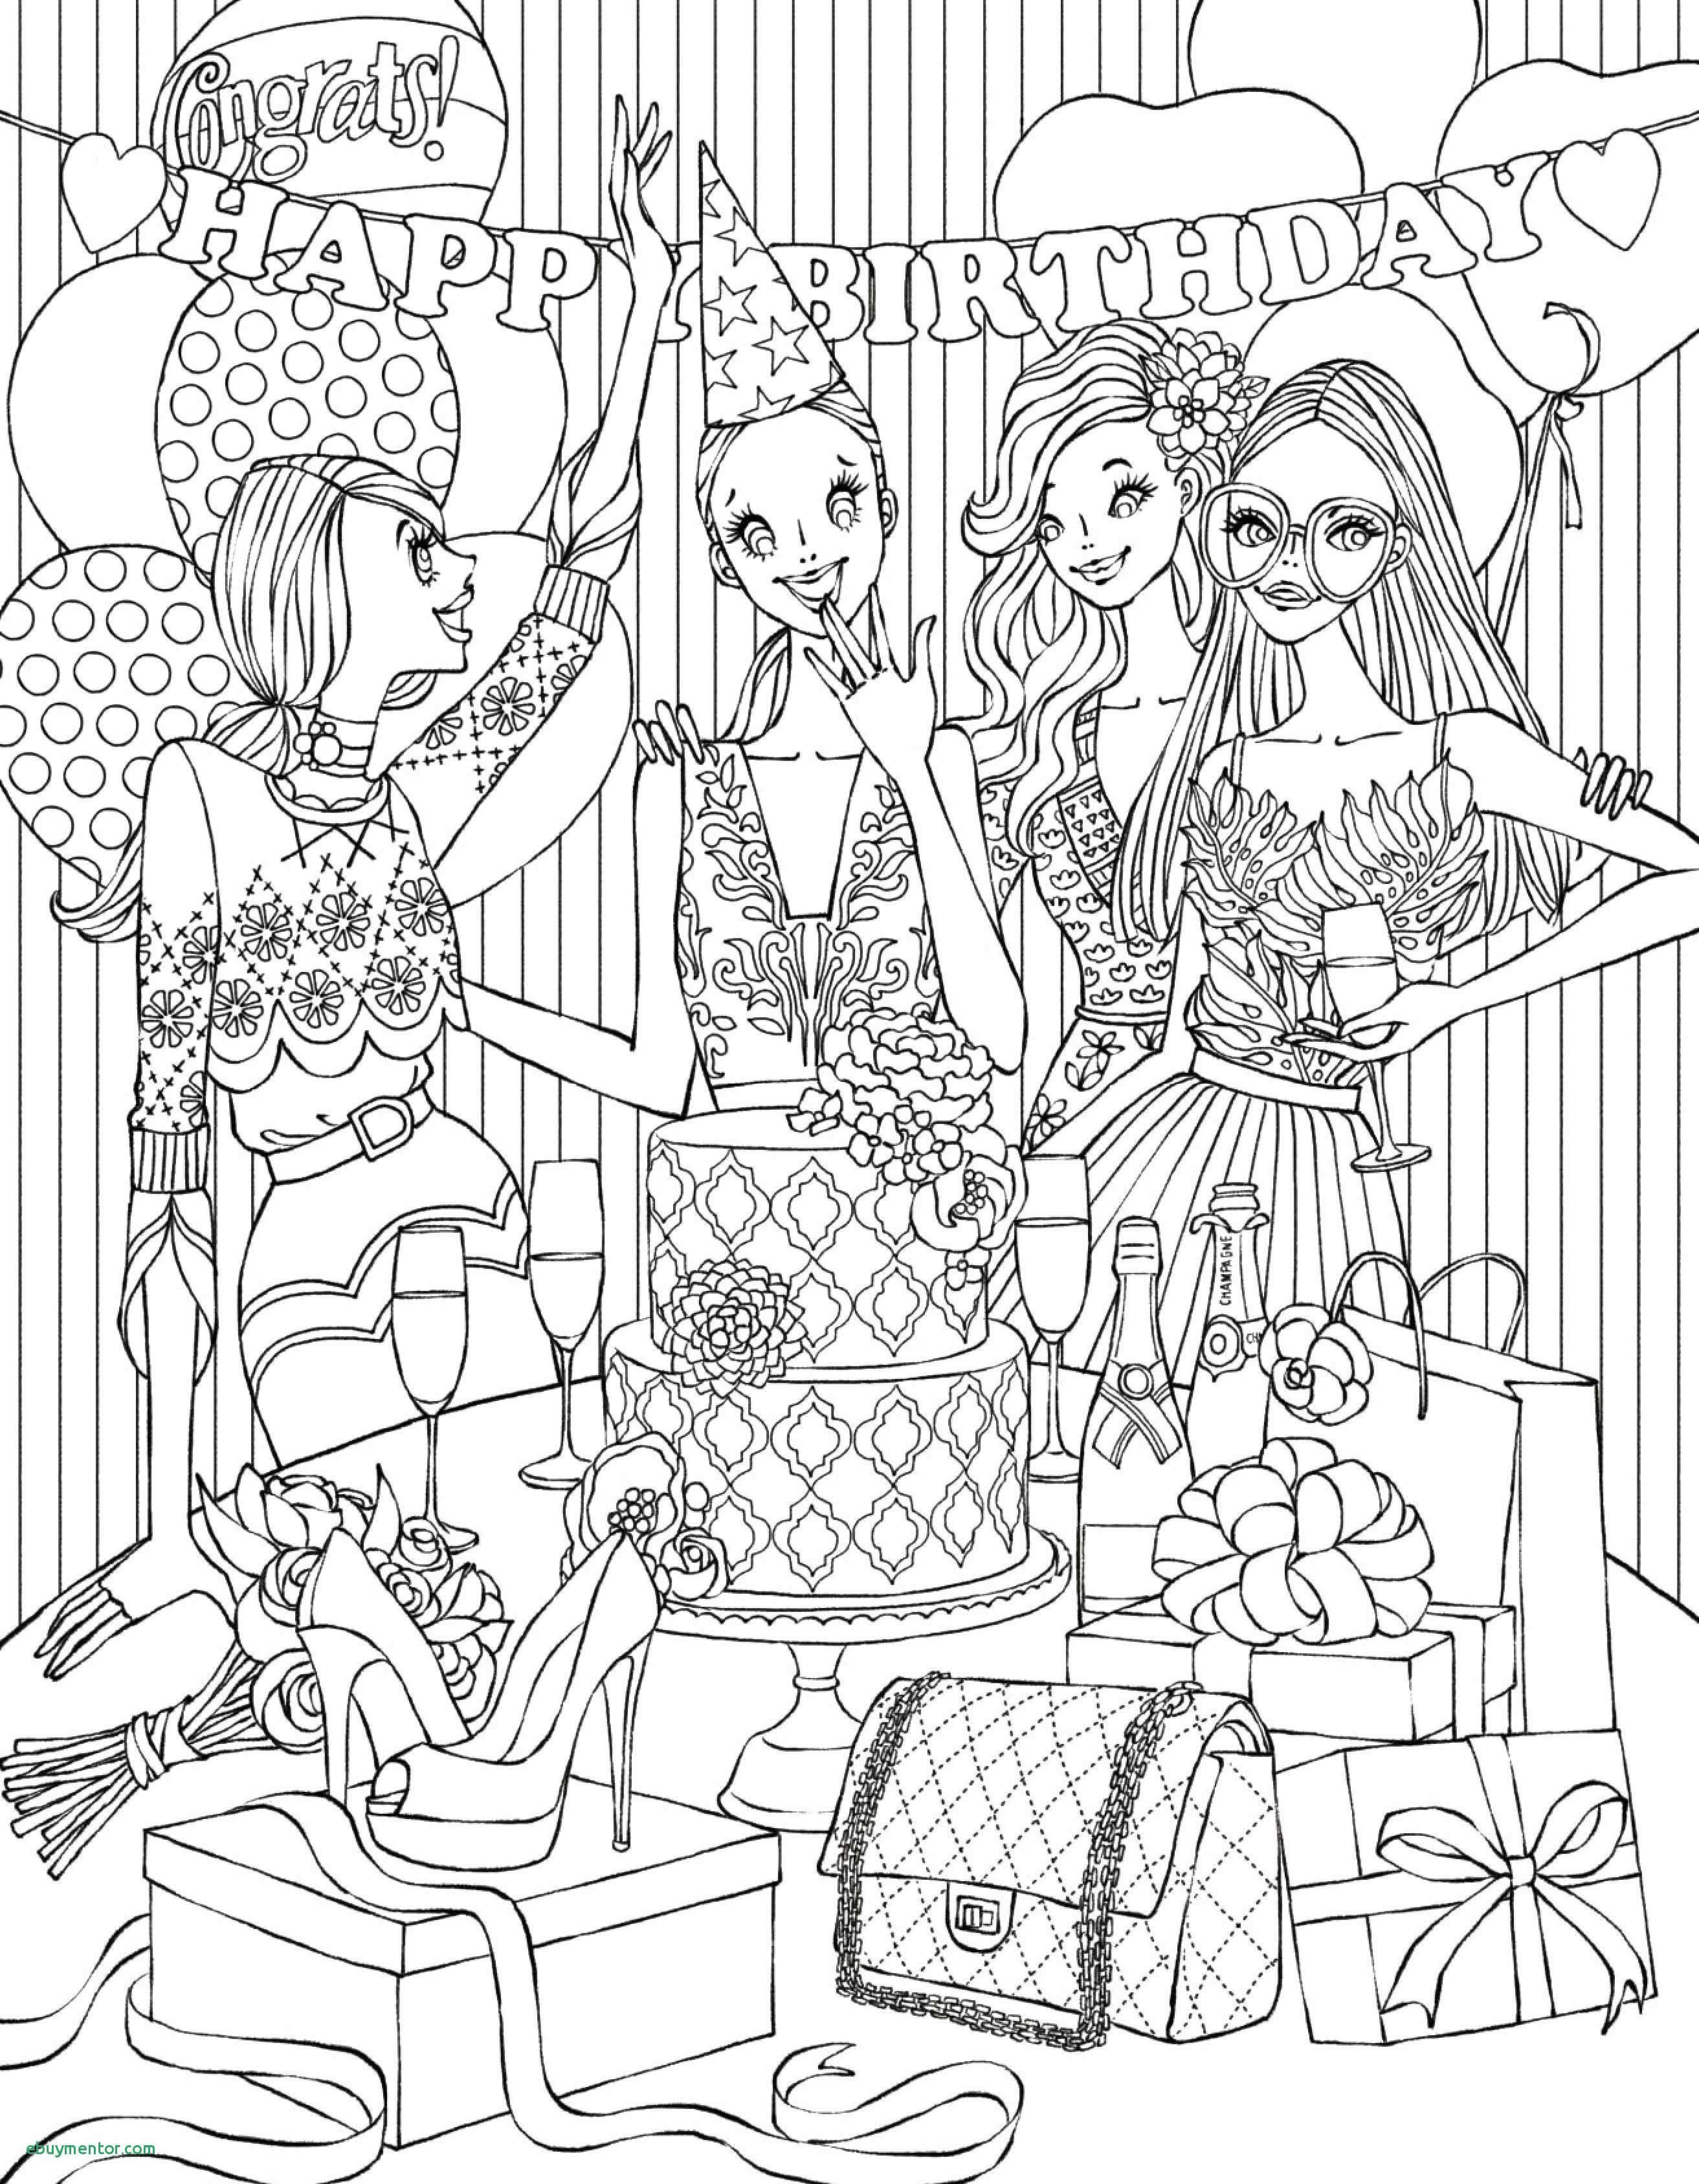 Shopping Coloring Pages  Collection 1r - Free Download